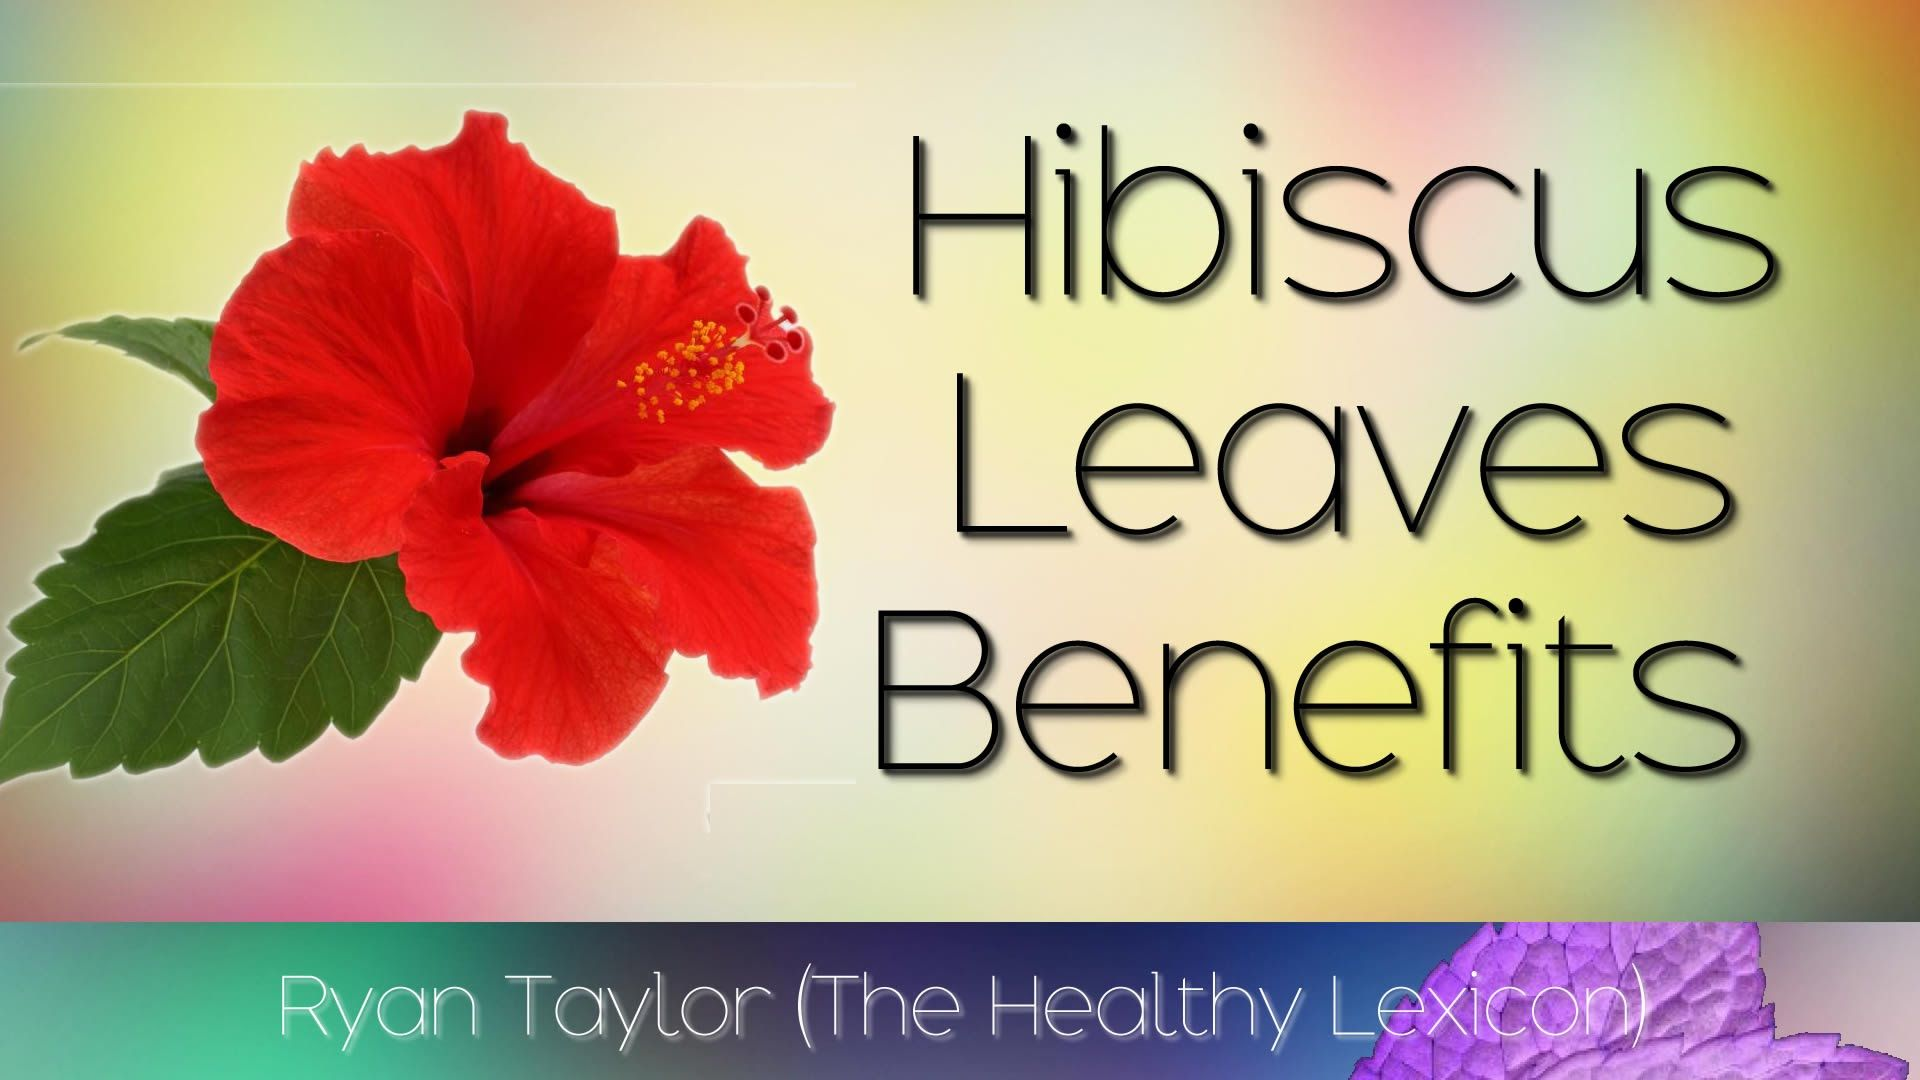 Hibiscus Leaves Benefits And Uses Hibiscus Leaves Hibiscus Plant Leaves